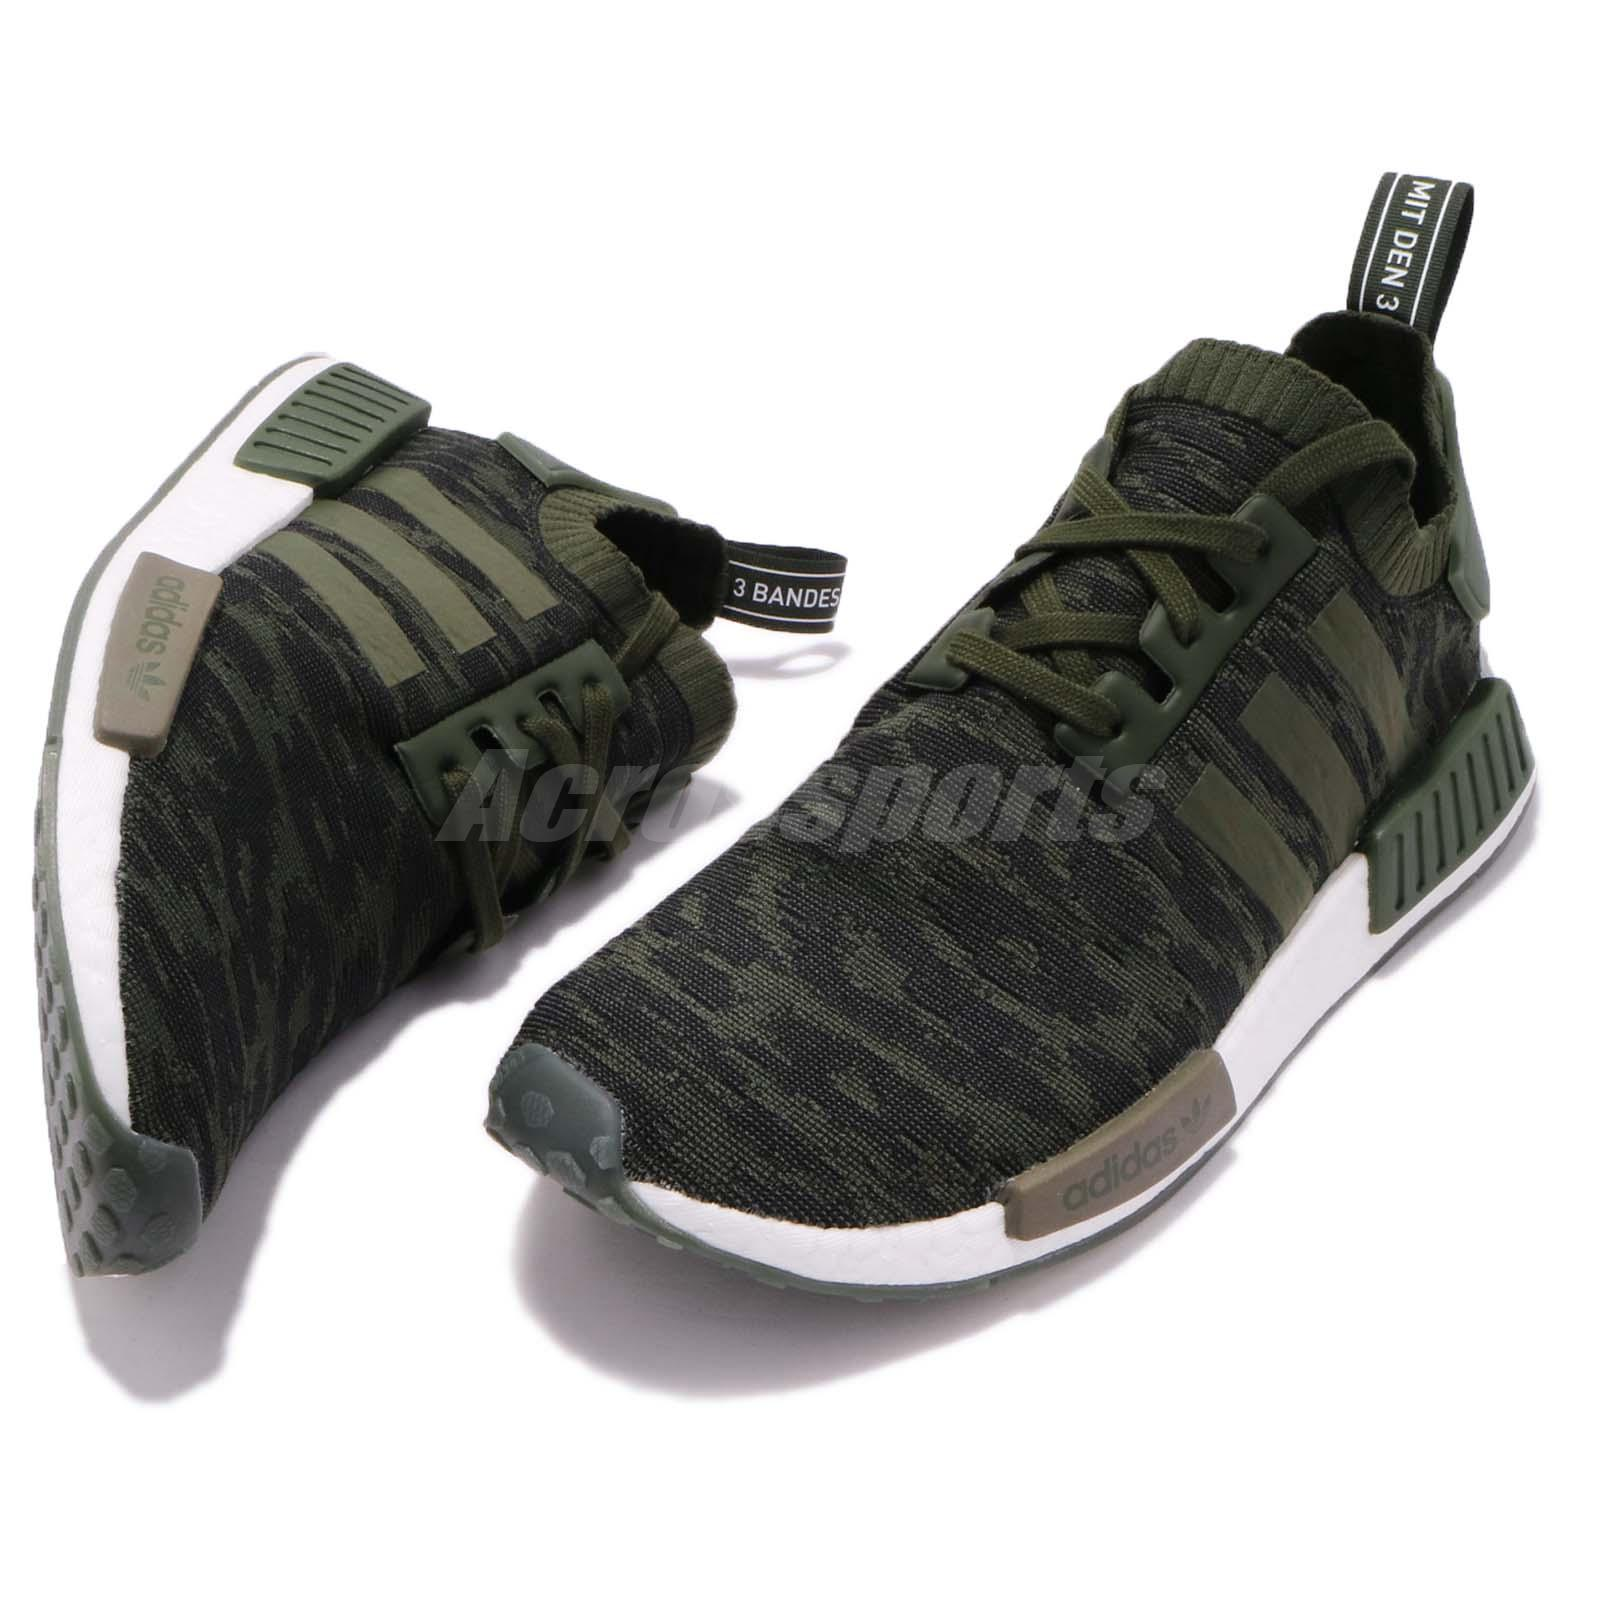 ce8770240a4a6 adidas Originals NMD R1 PK Primeknit Night Cargo G.. in Clothing ...